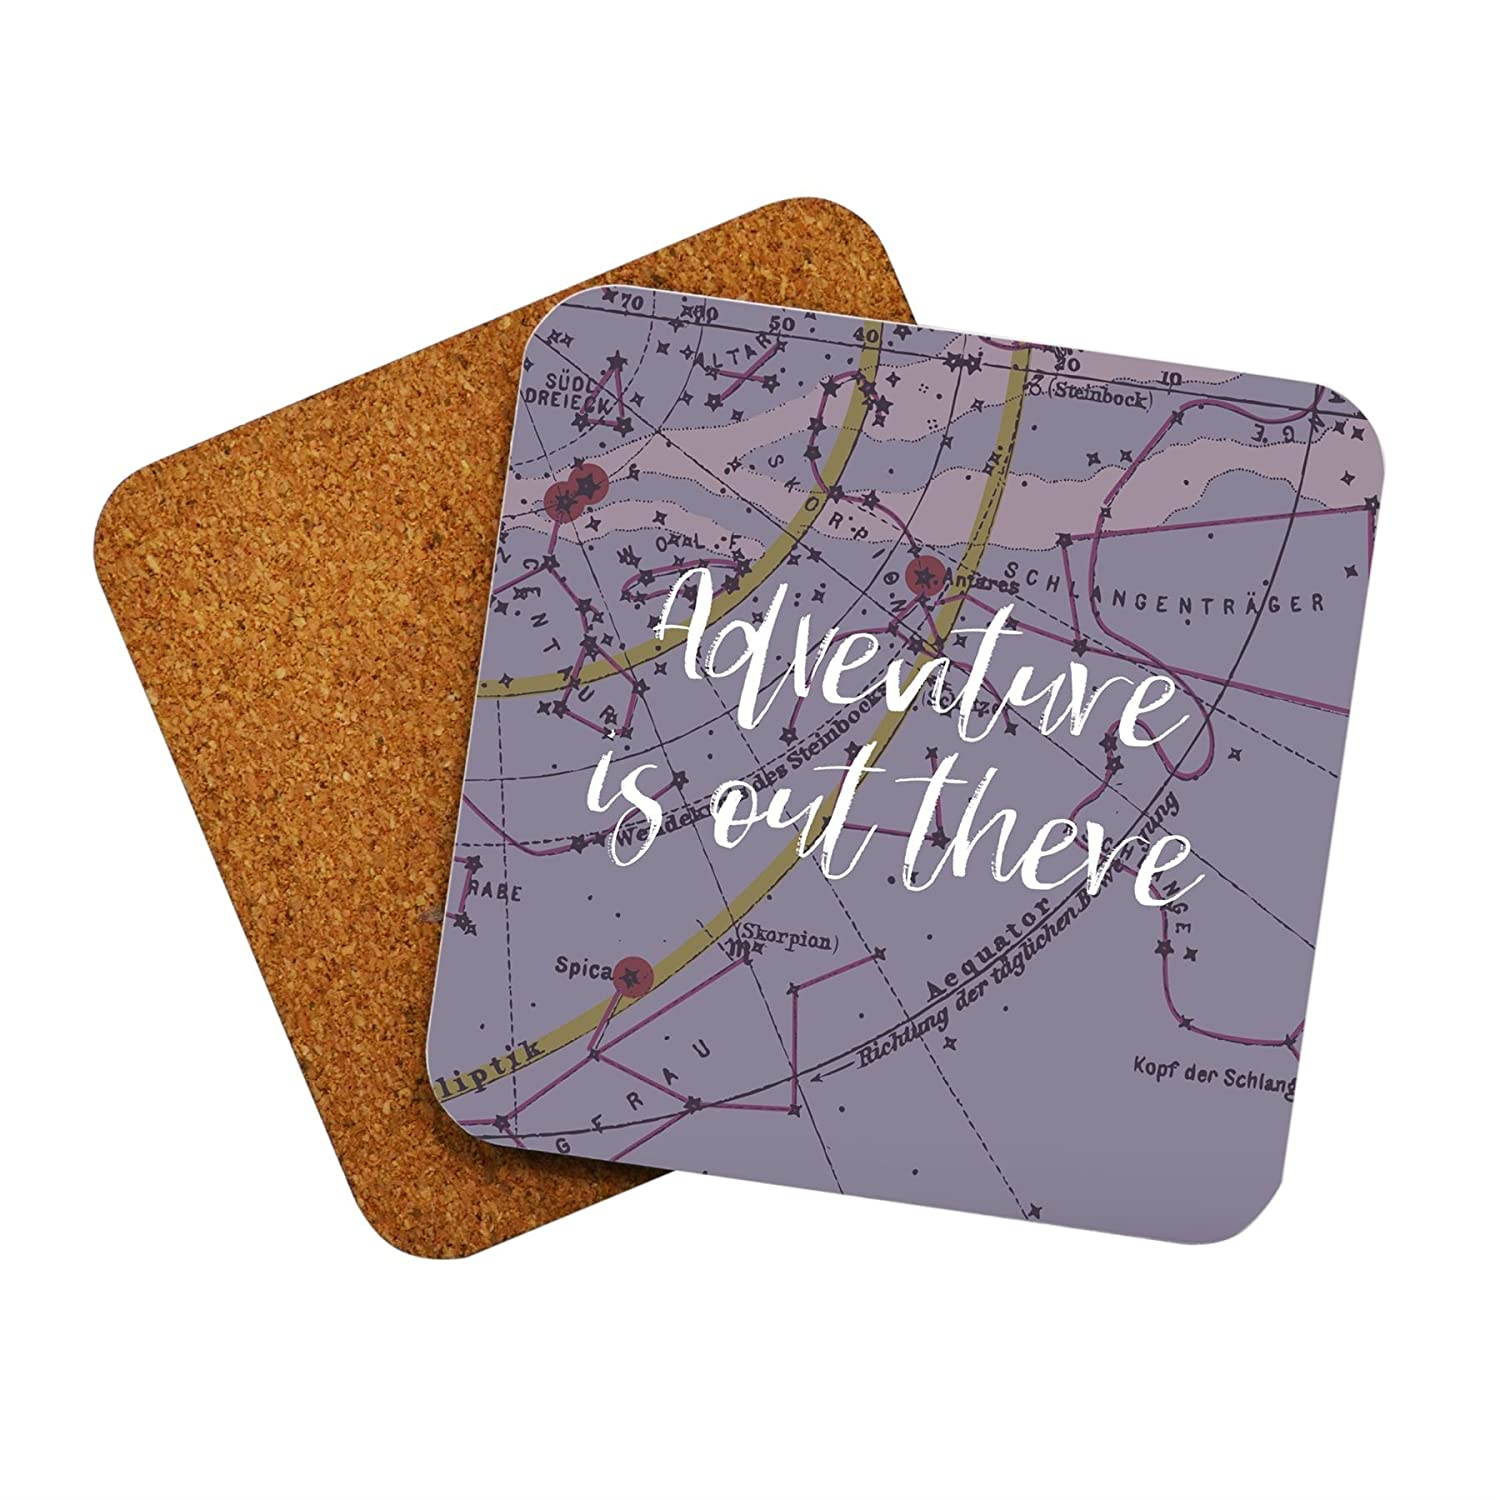 Drink Coasters Travel Quotes Novelty Coaster Set Gifts for Men Women   Amazon.co.uk  Kitchen   Home da9f939d1f